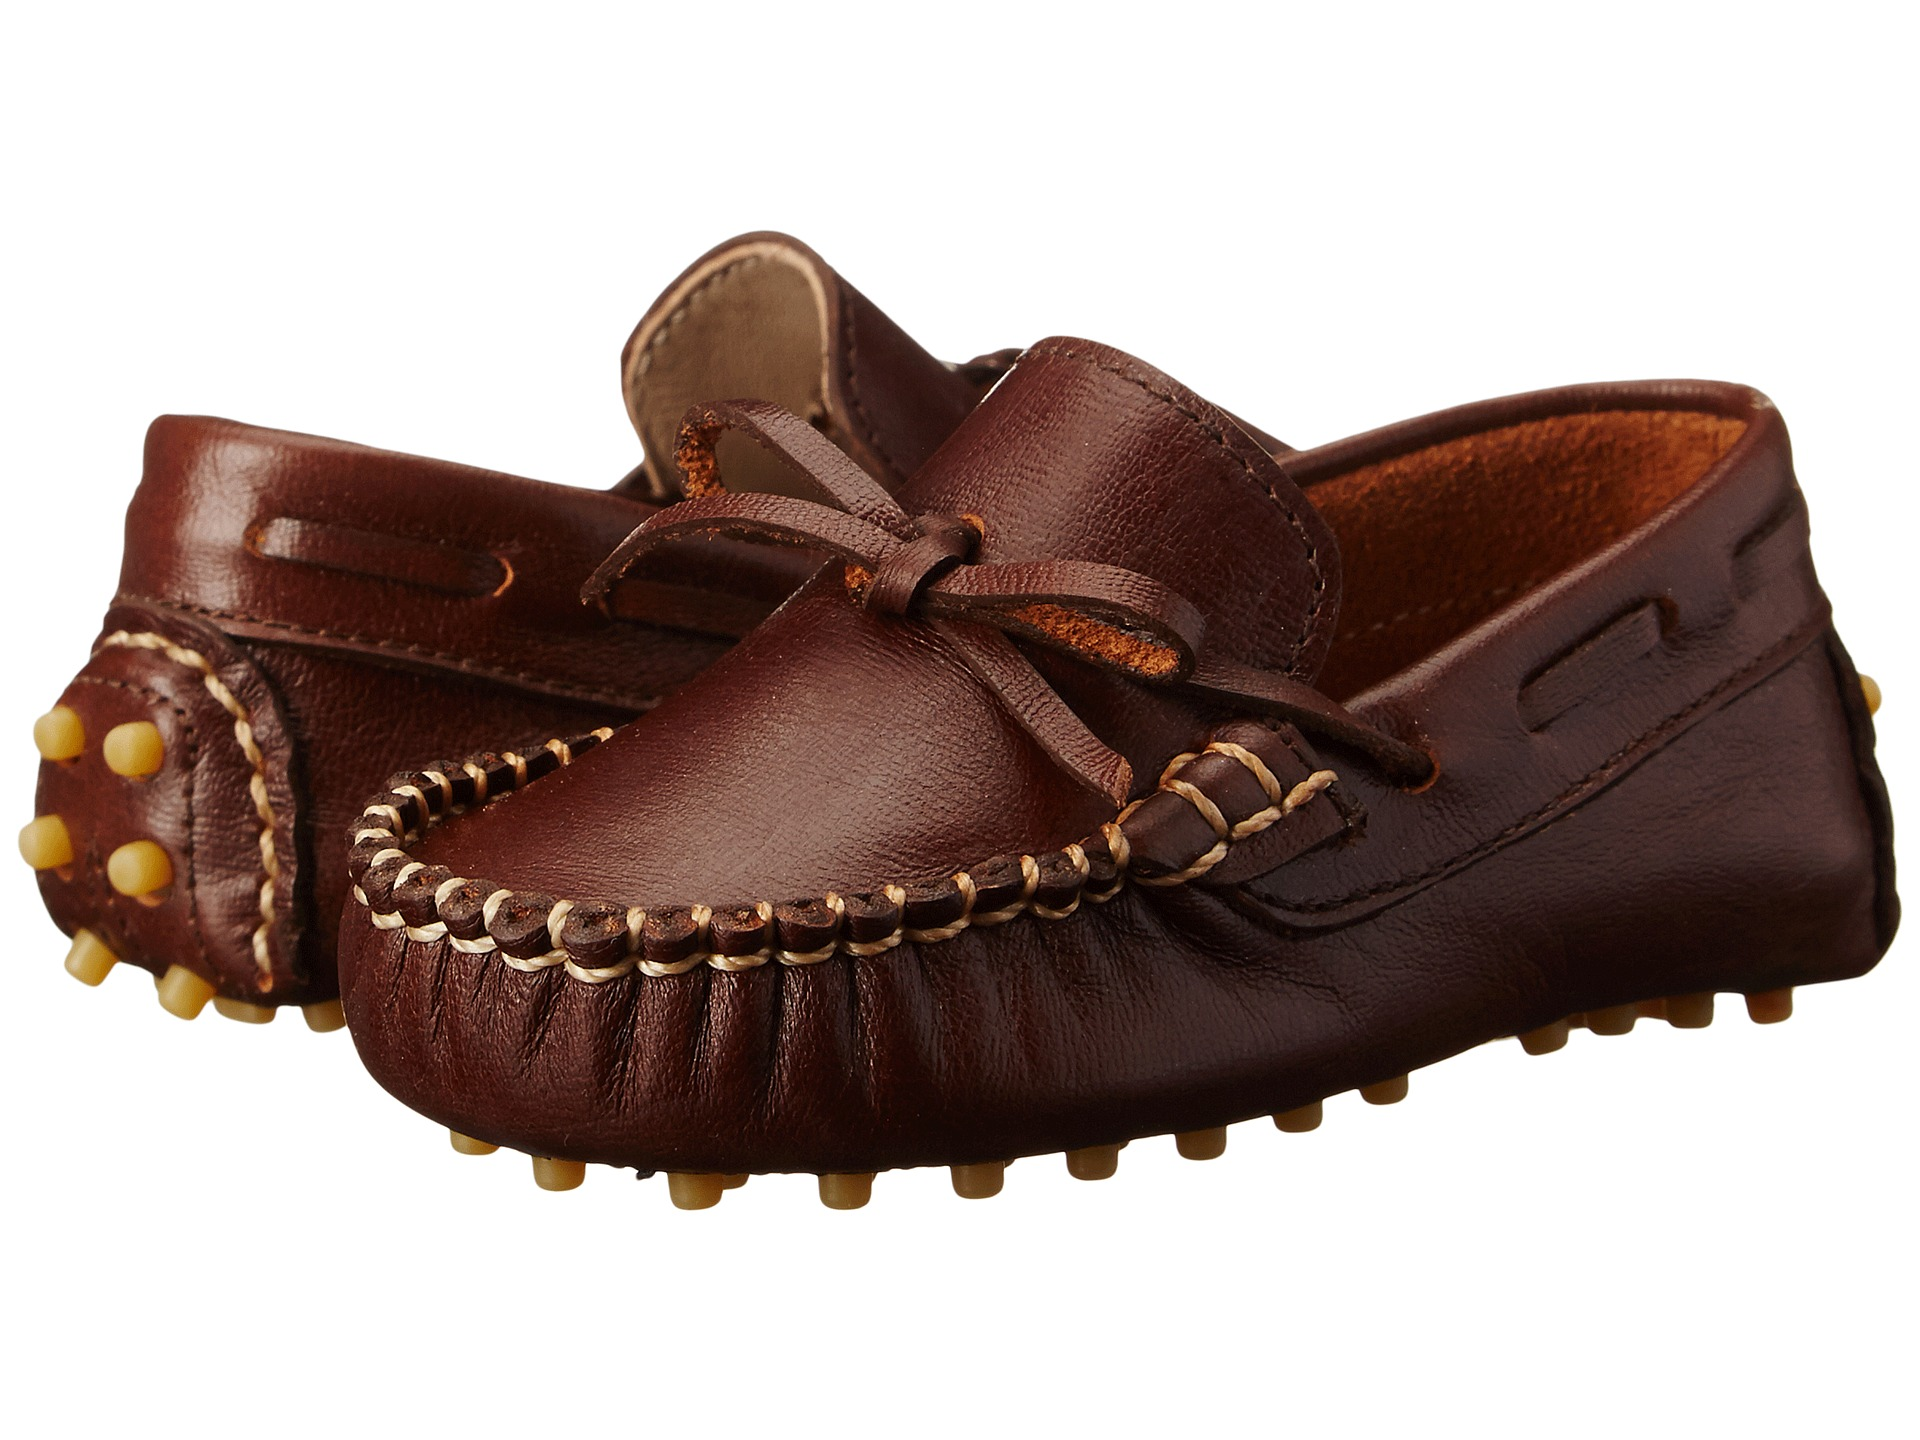 Boys' Loafers. Boys like shoes that are easy to get on and fast to kick off–and loafers are the perfect solution. Let Amazon help you satisfy his shoe needs with our effortless loafers and loafer-style boat shoes, laceless canvas shoes, moccasins, and more.